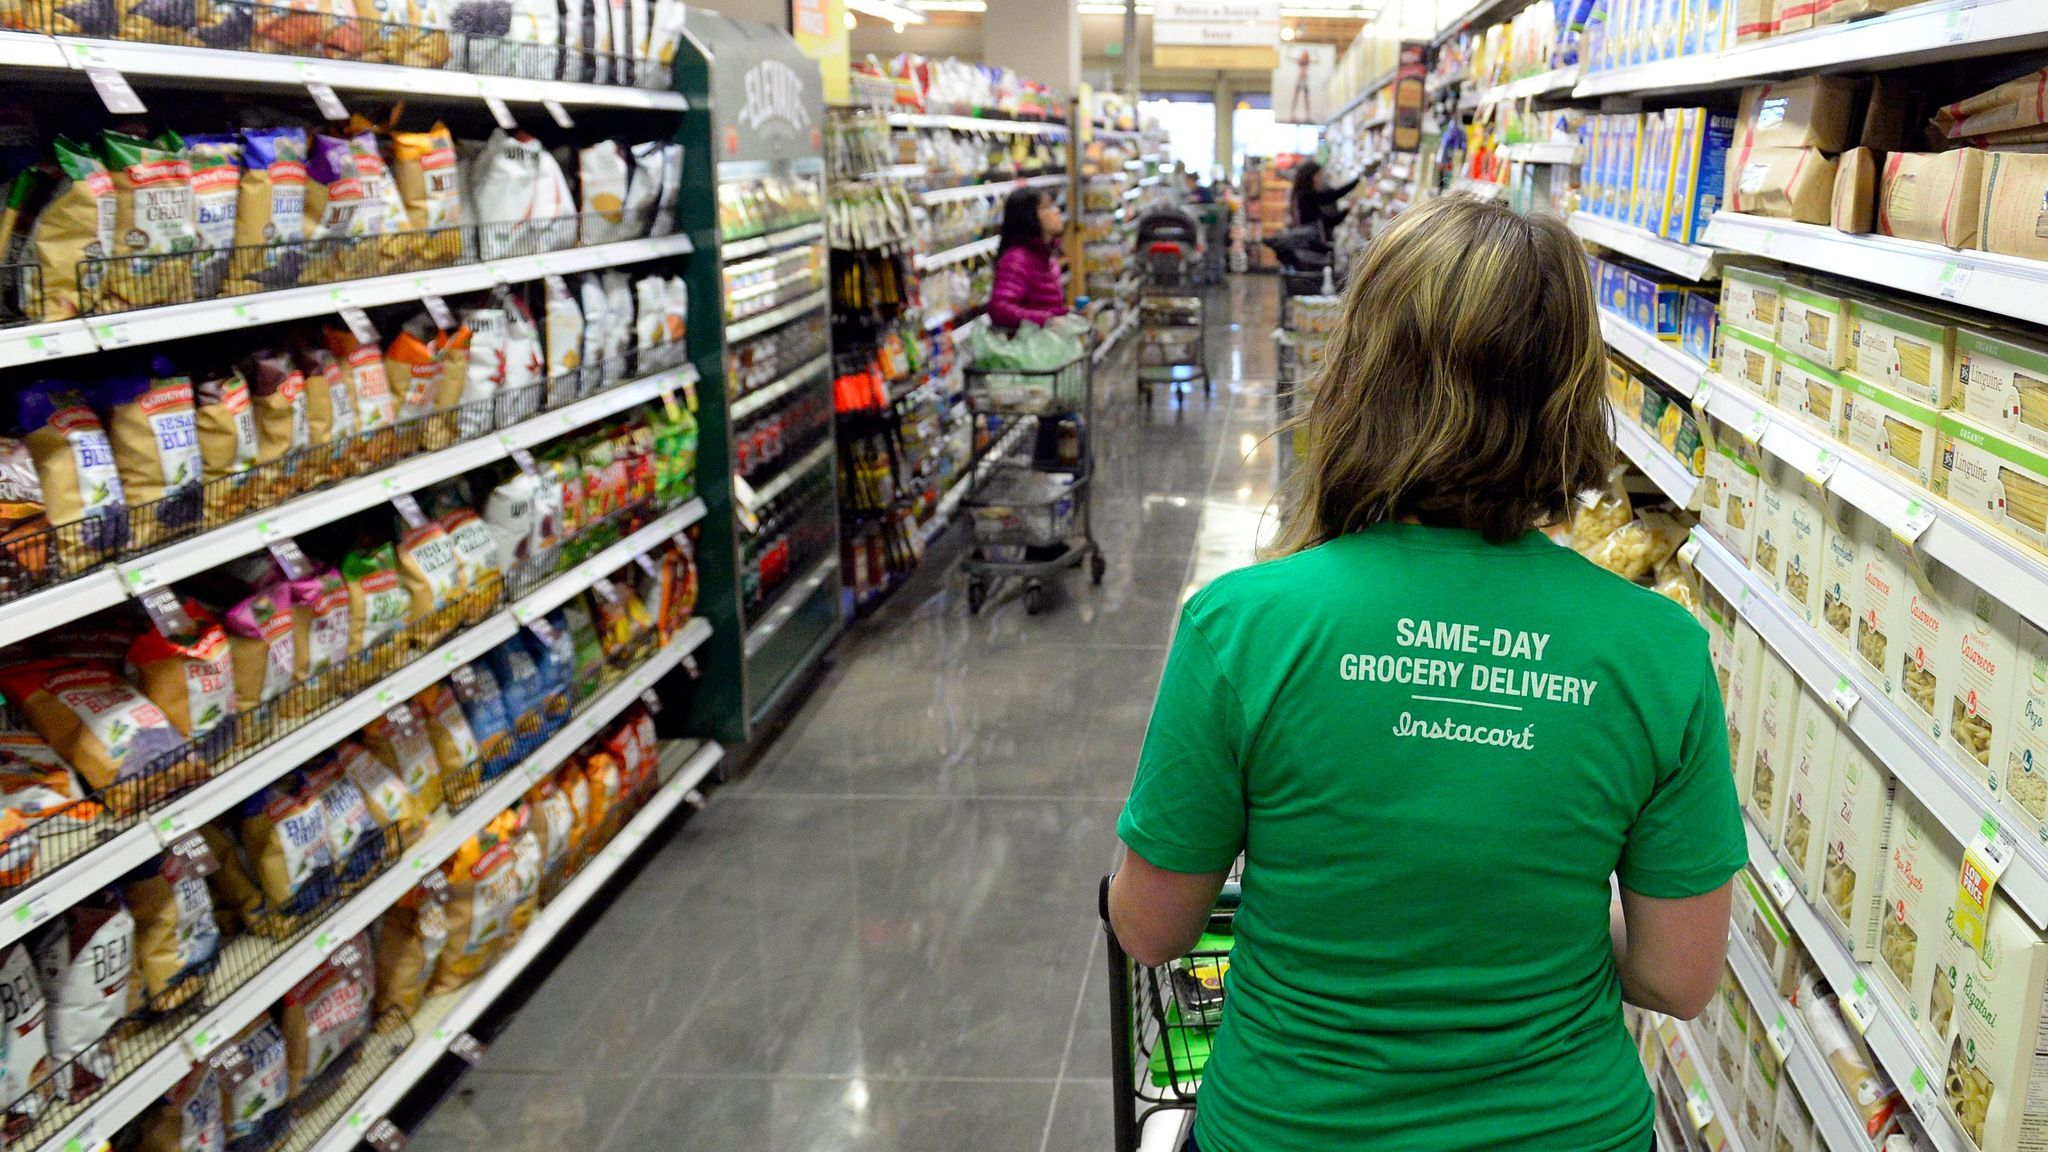 An Instacart shopper looks for groceries at a Whole Foods store in Denver.